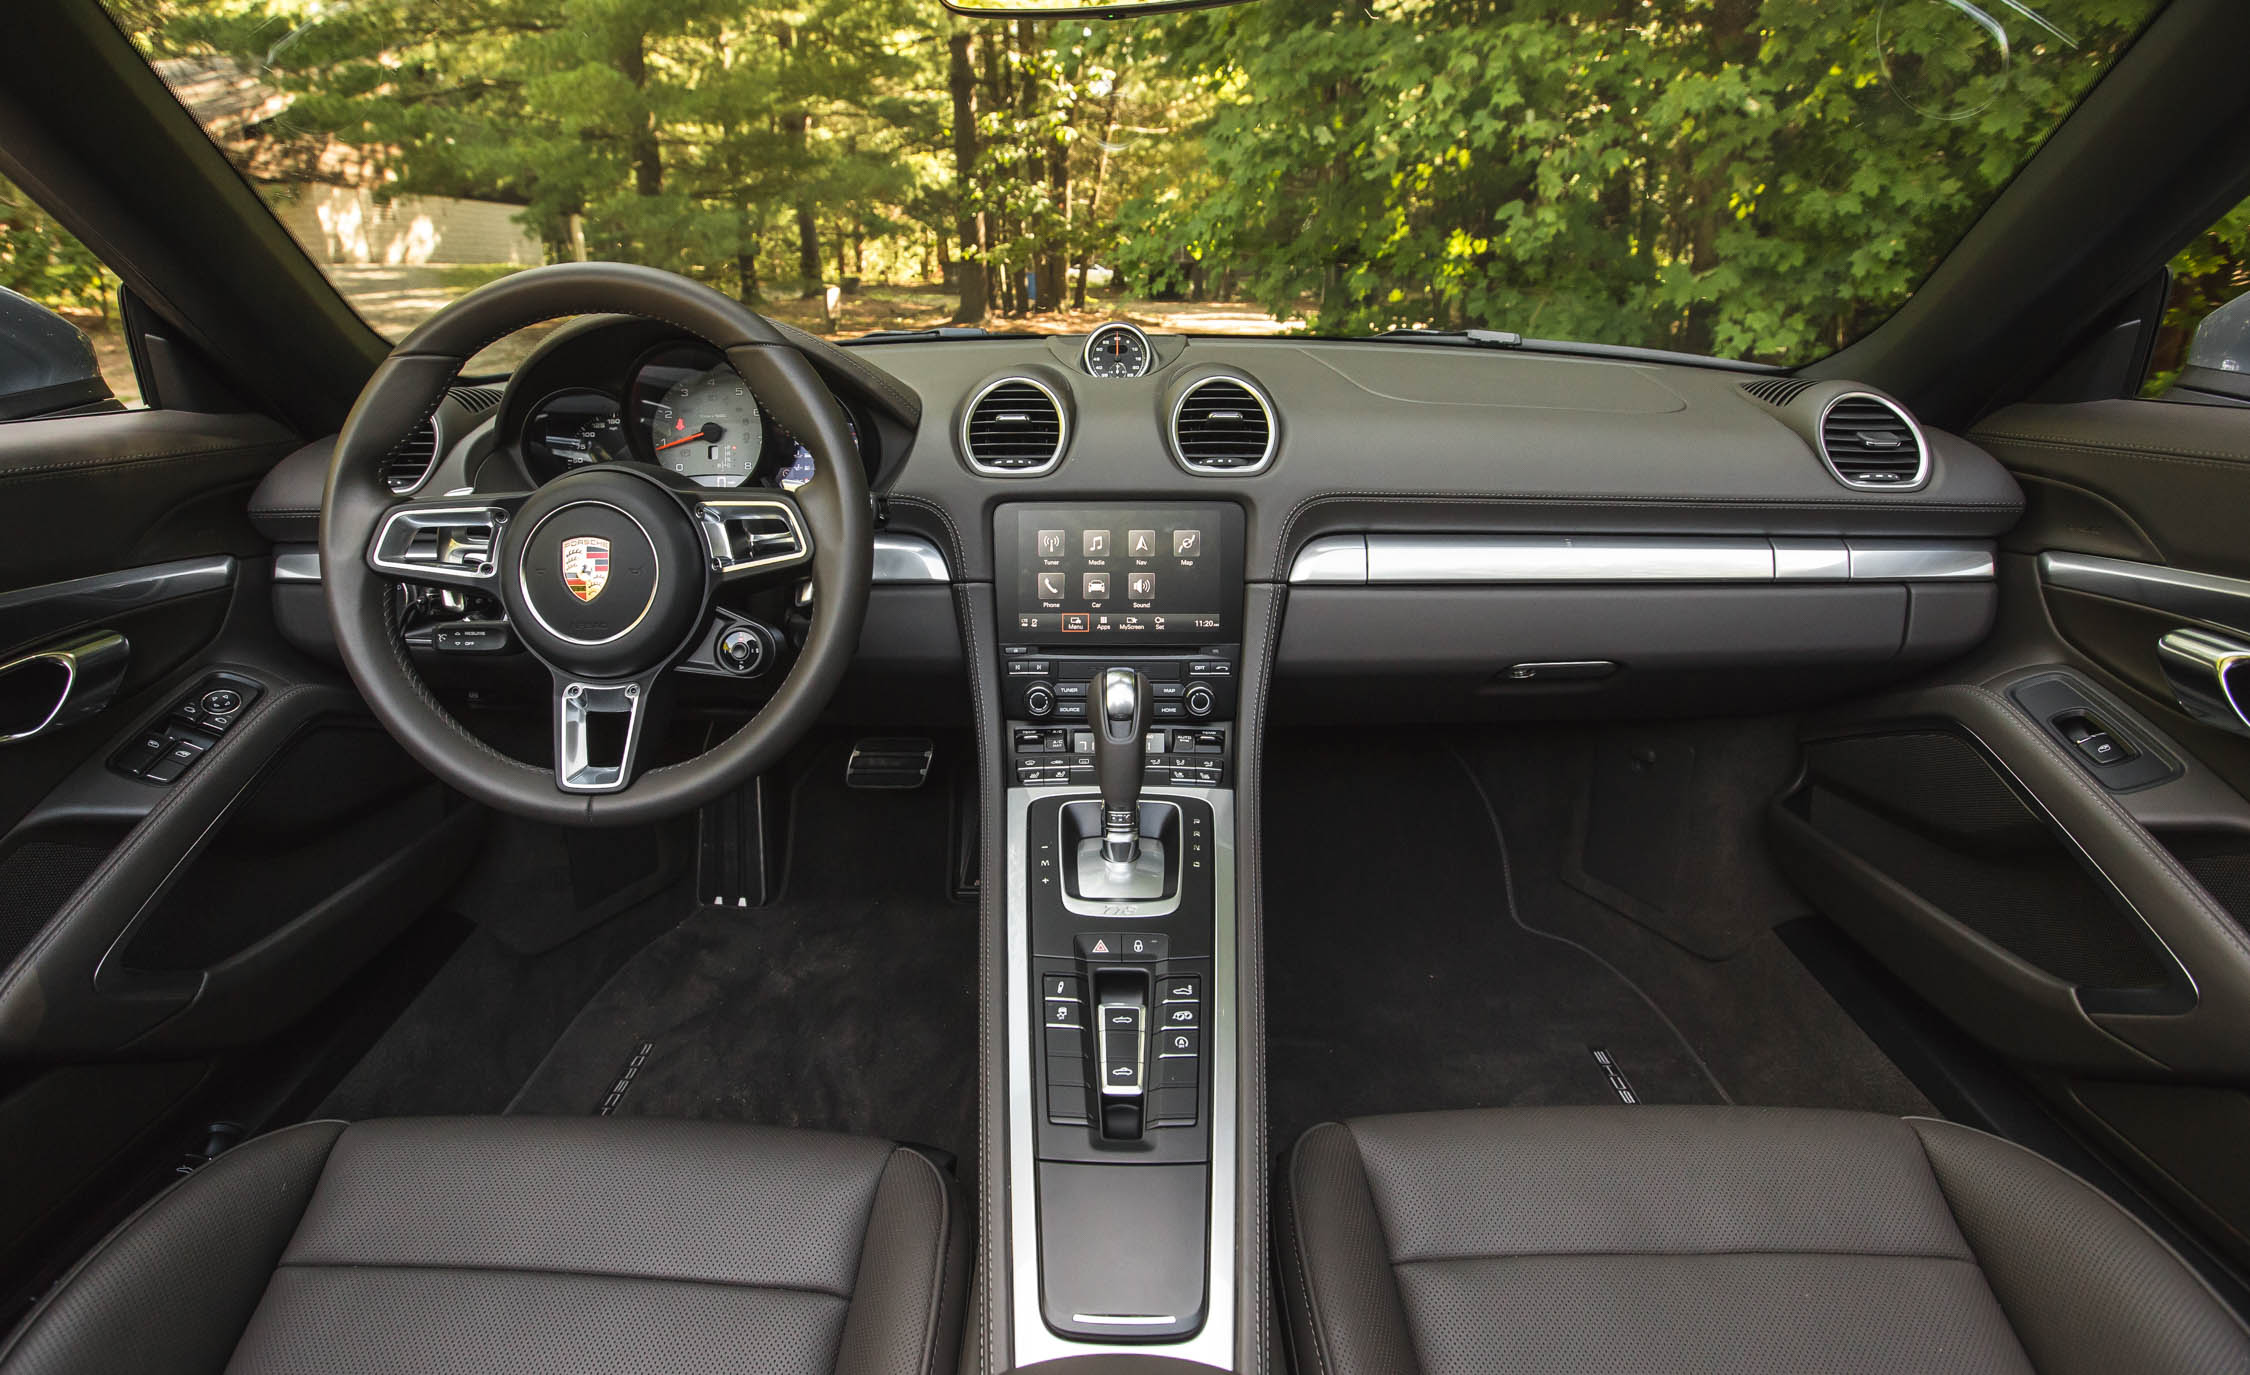 2017 Porsche 718 Boxster S Interior (View 34 of 71)